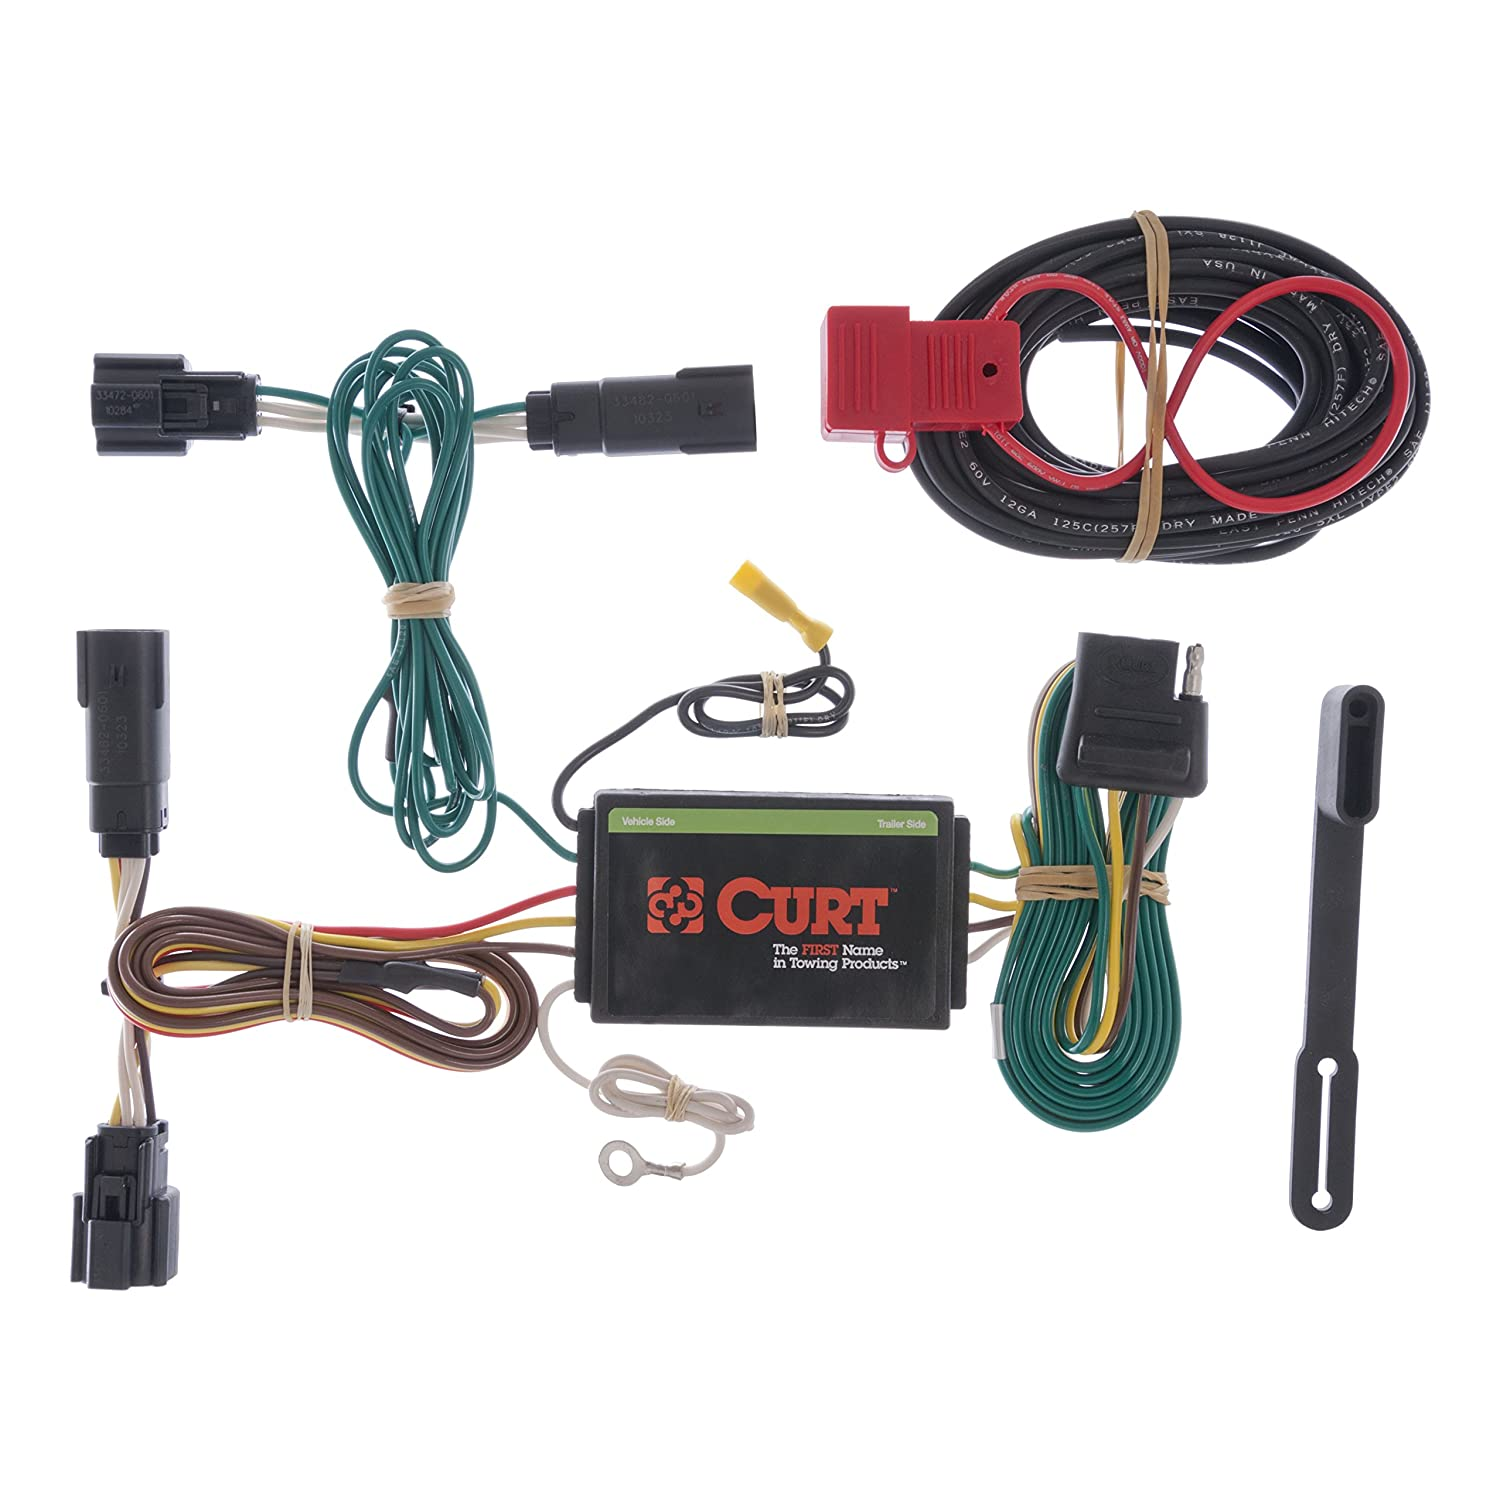 81ohhw2GXXL._SL1500_ amazon com curt 56120 custom wiring harness automotive custom wiring harness at mifinder.co